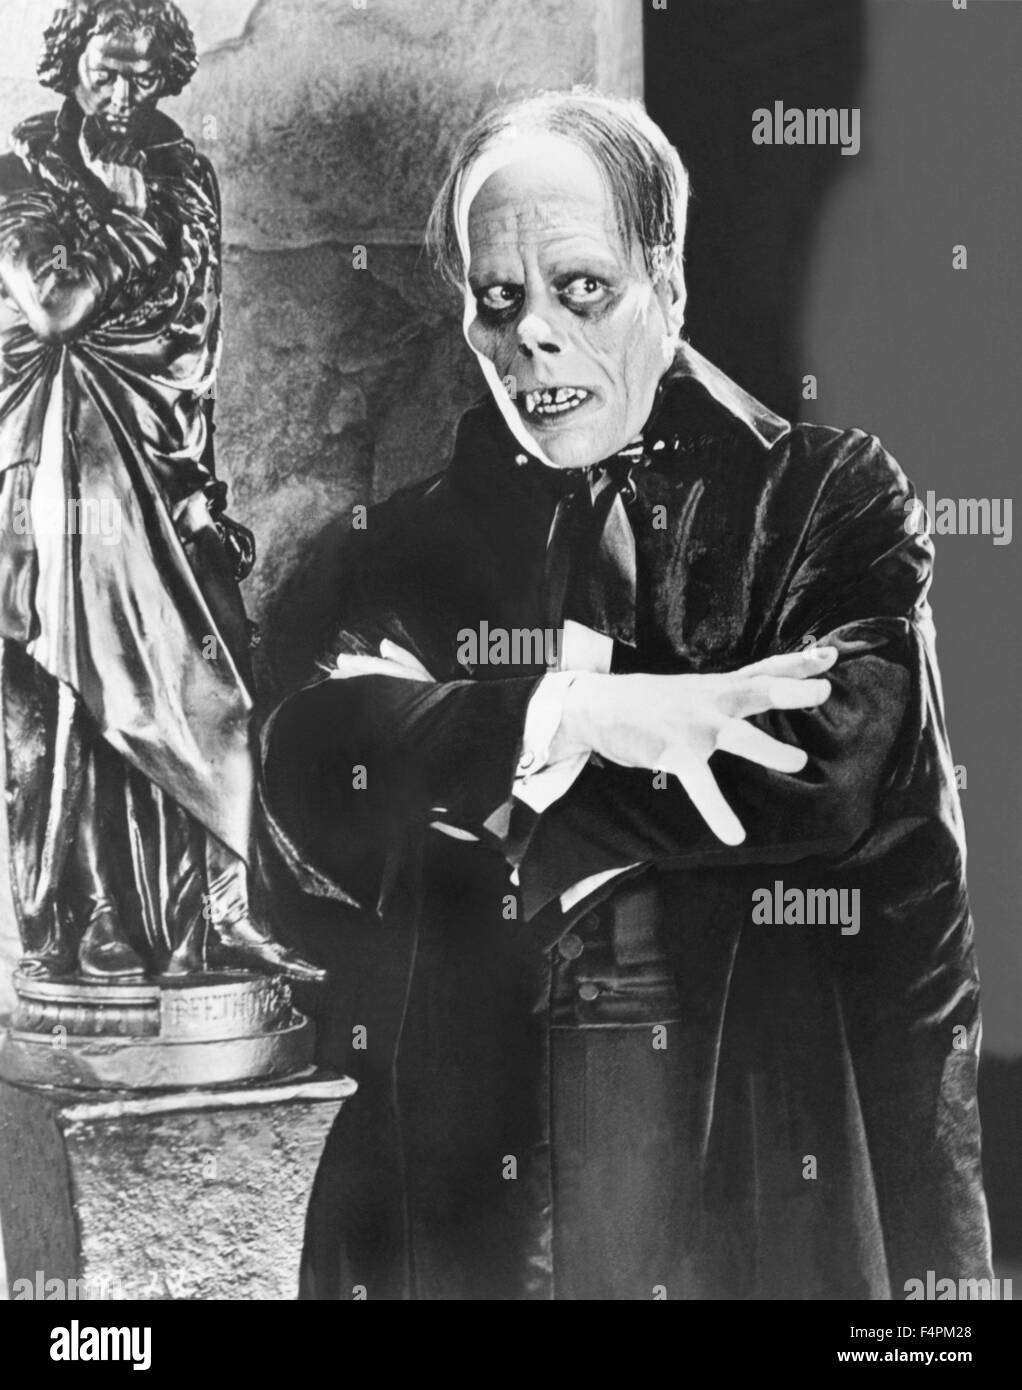 Lon Chaney / The Phantom of the Opera / 1925 directed by Rupert Julian and Lon Chaney [Universal Pictures] - Stock Image